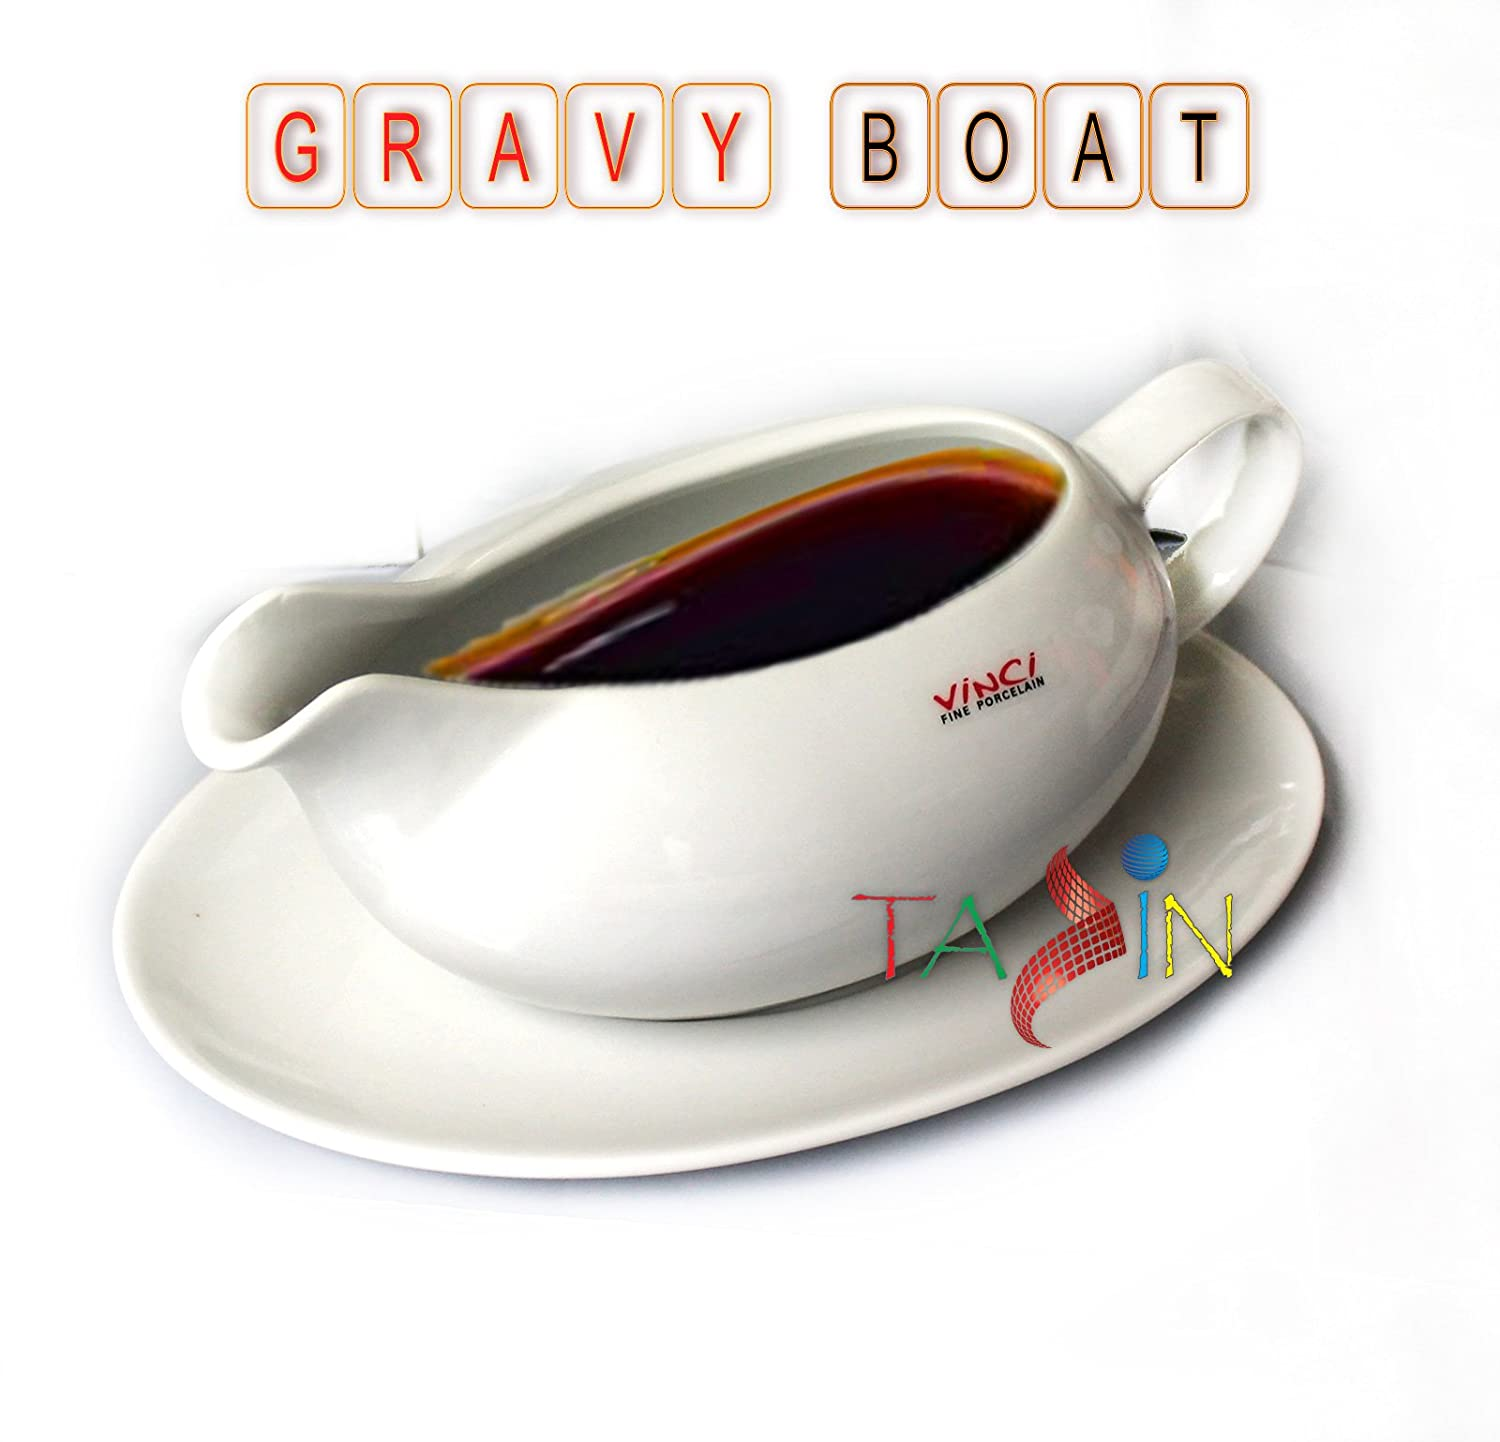 Turkey Shaped Gravy Boat Features